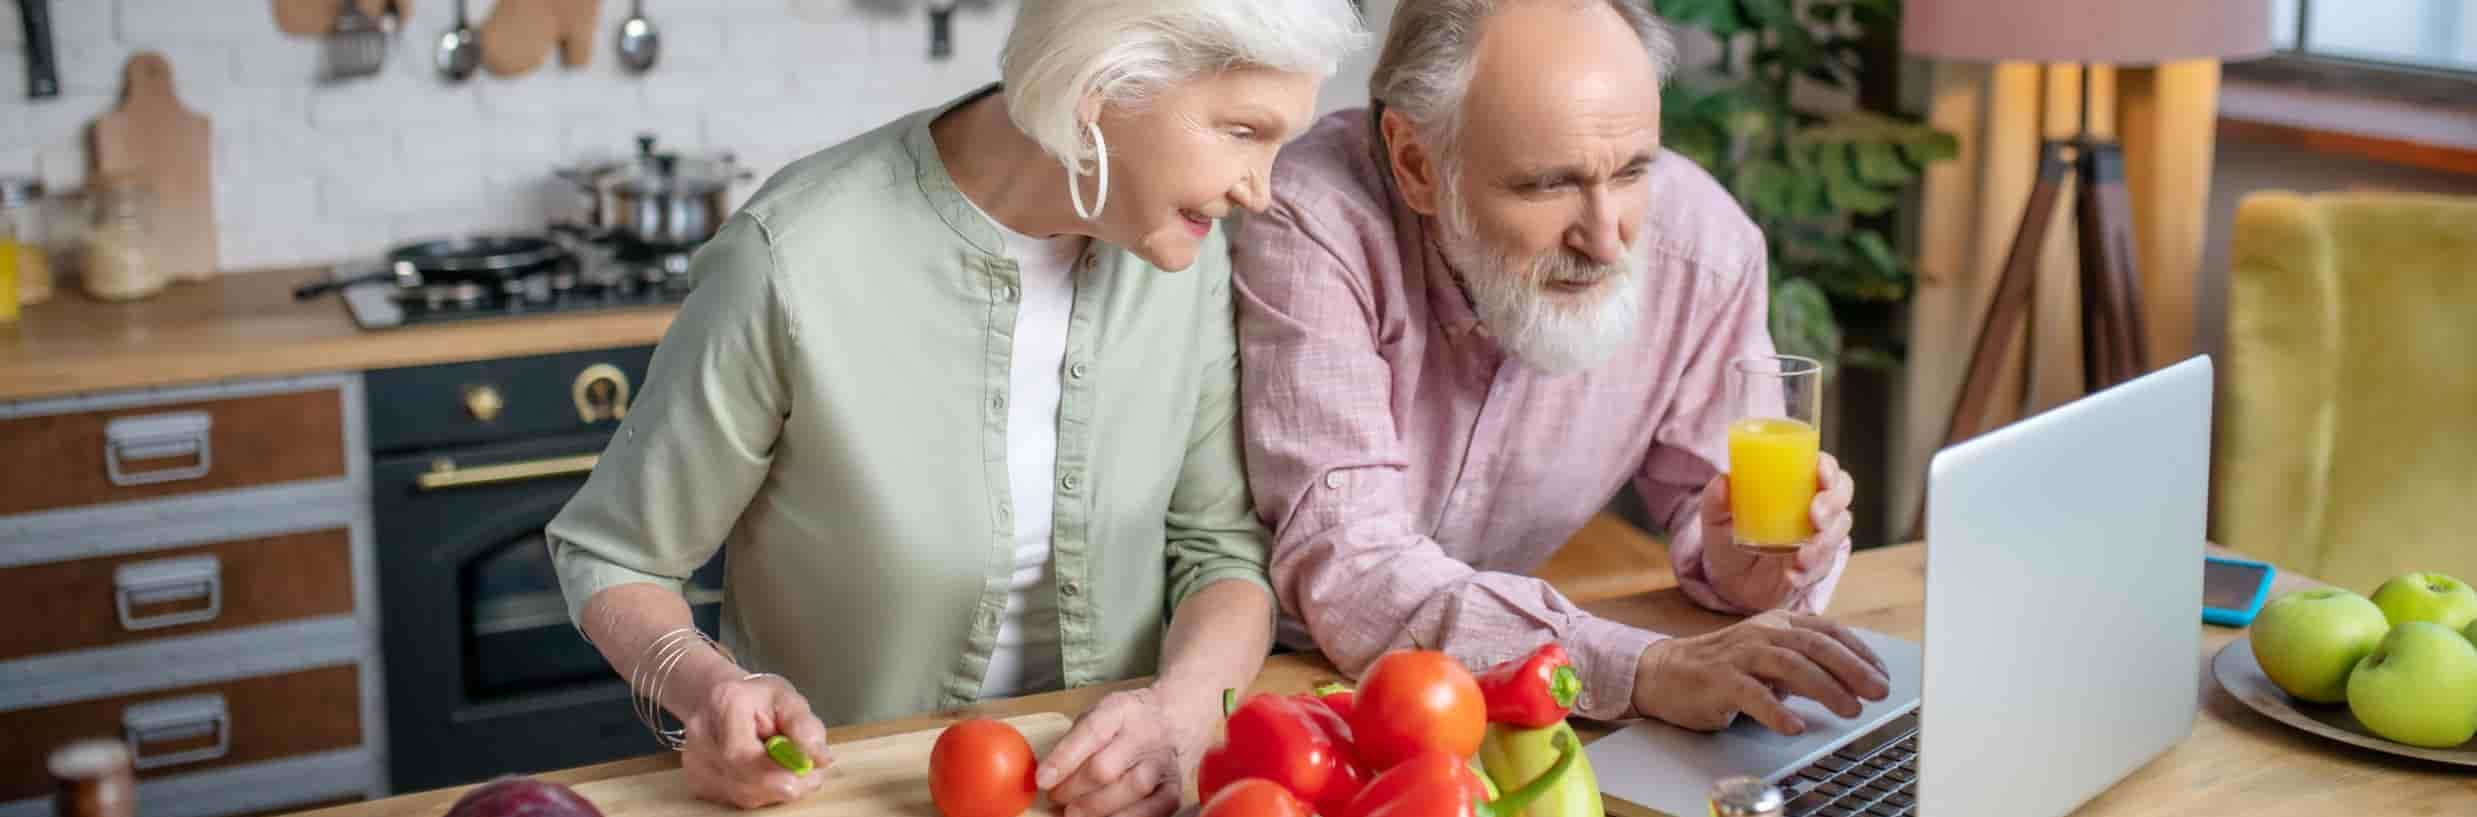 Elderly couple looking up recipes on their computer